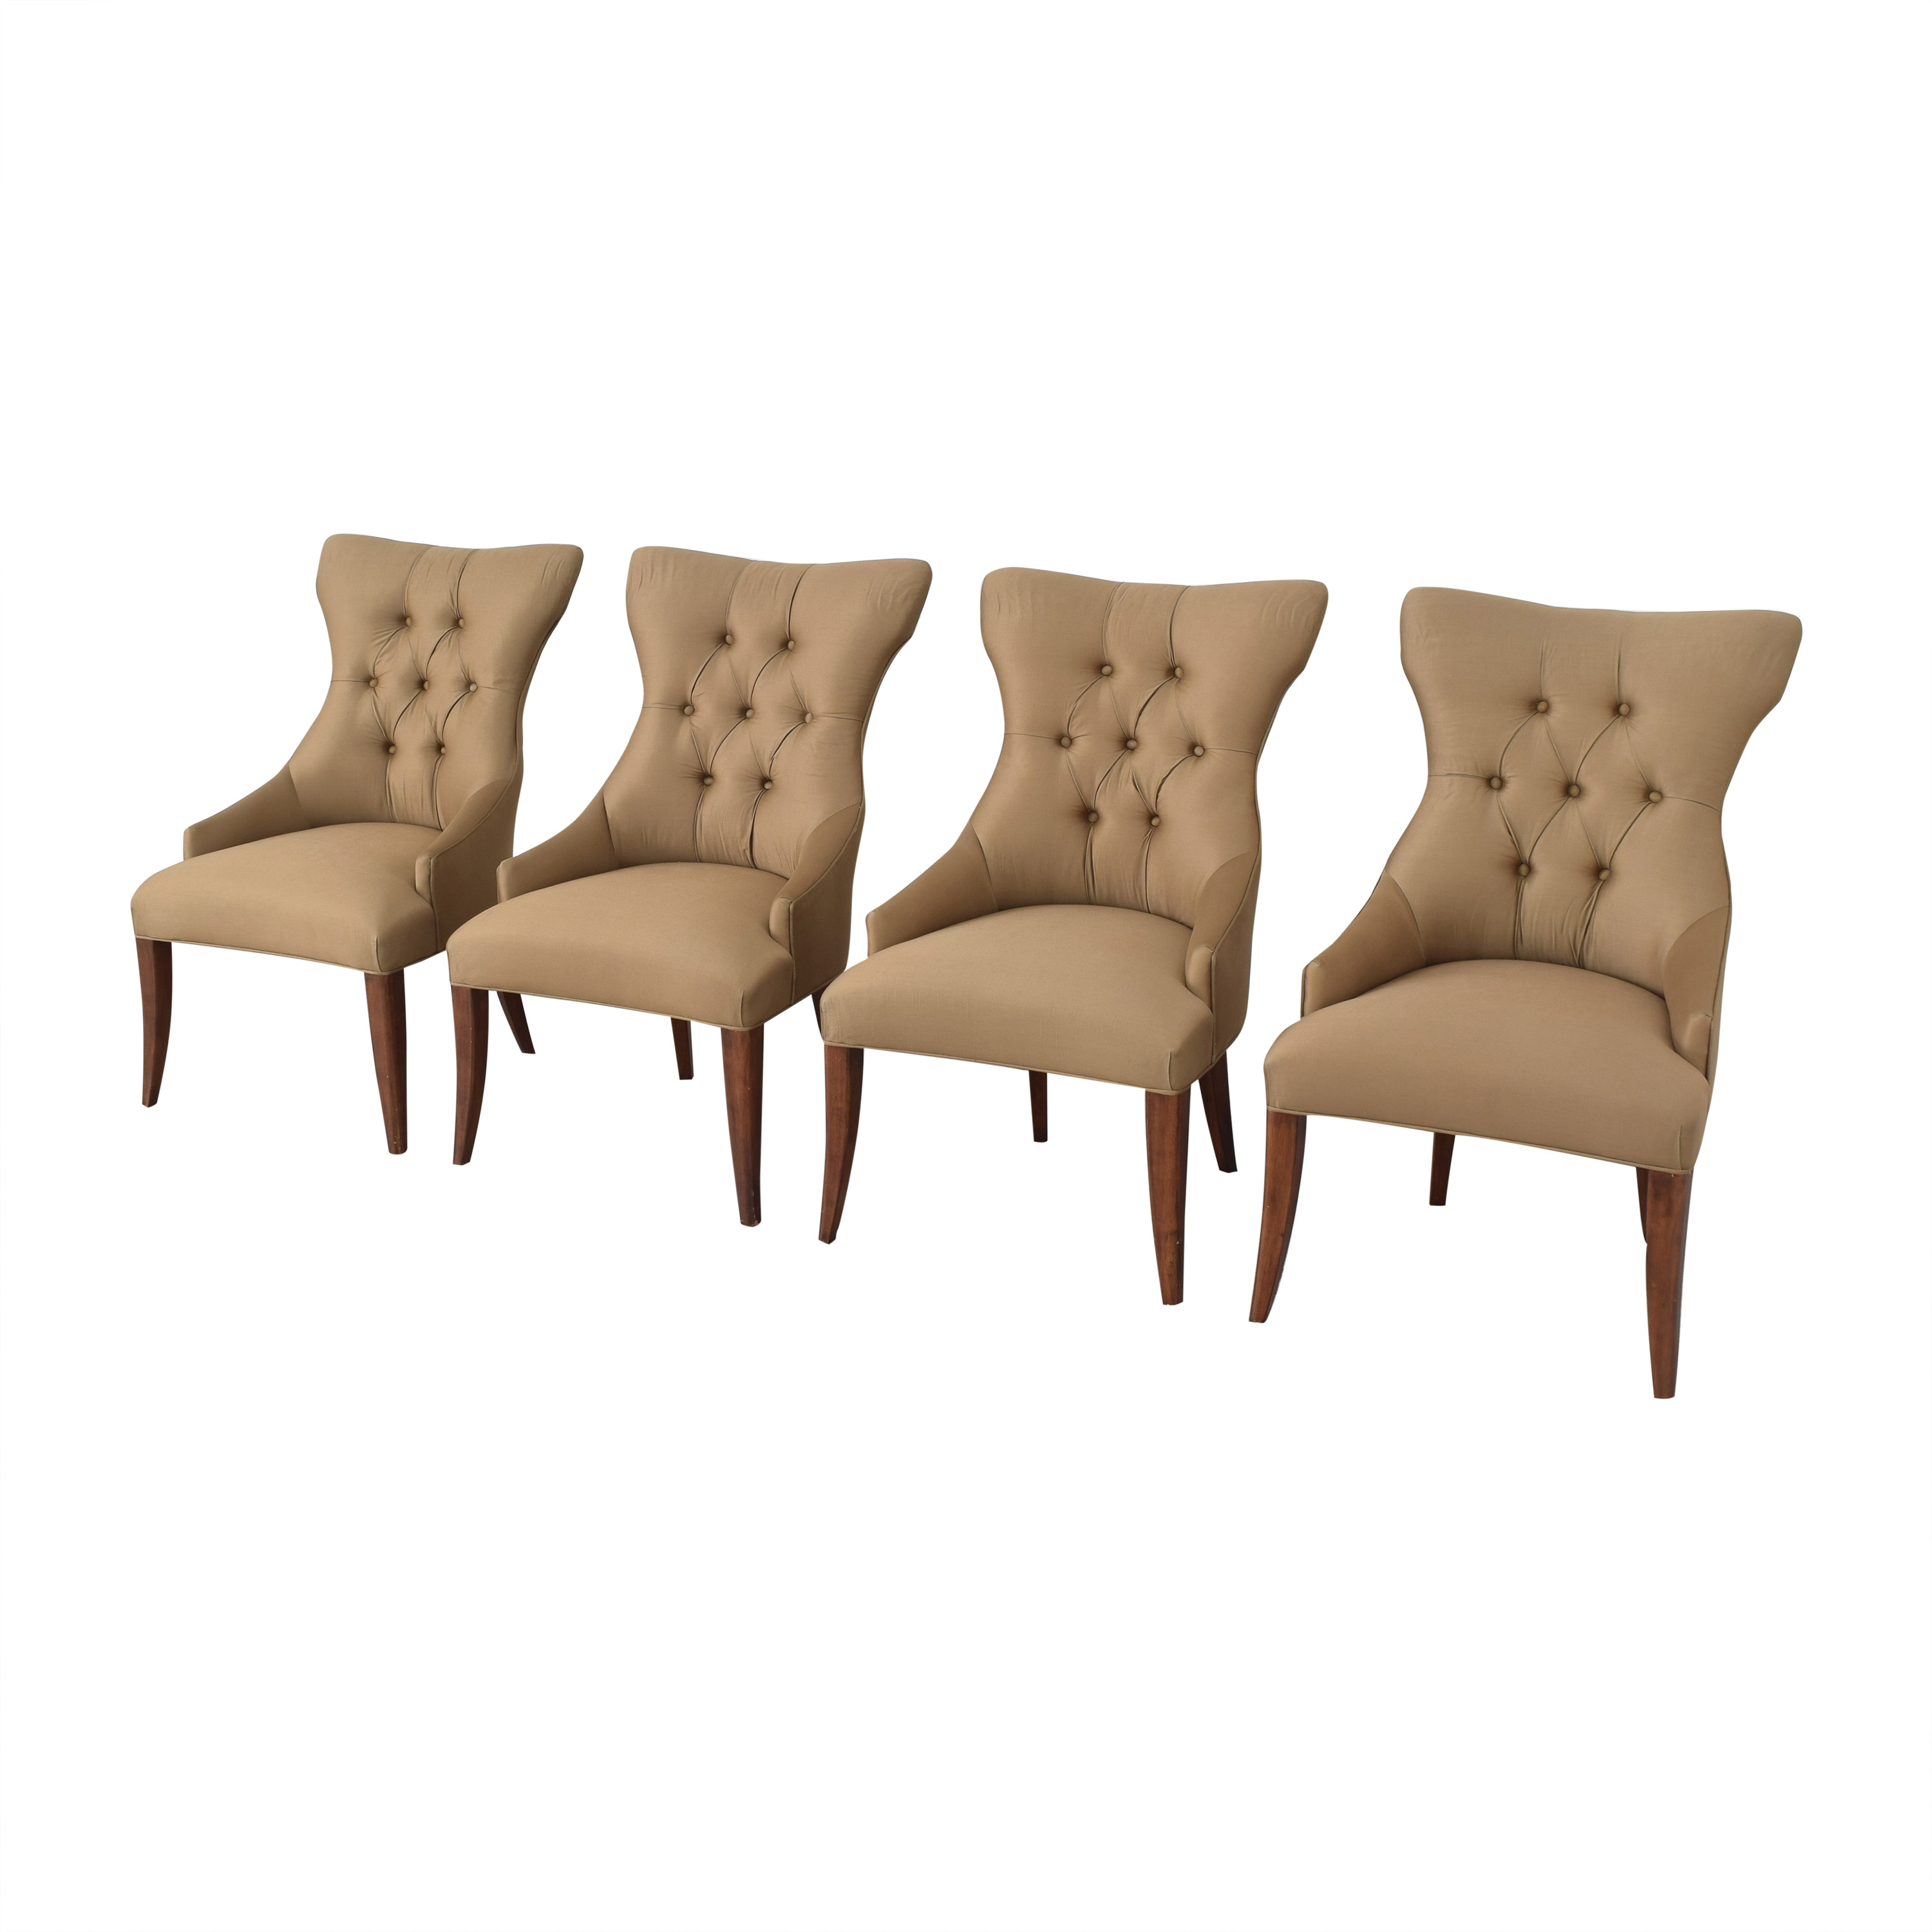 Bernhardt Gray Deco Dining Chairs / Chairs